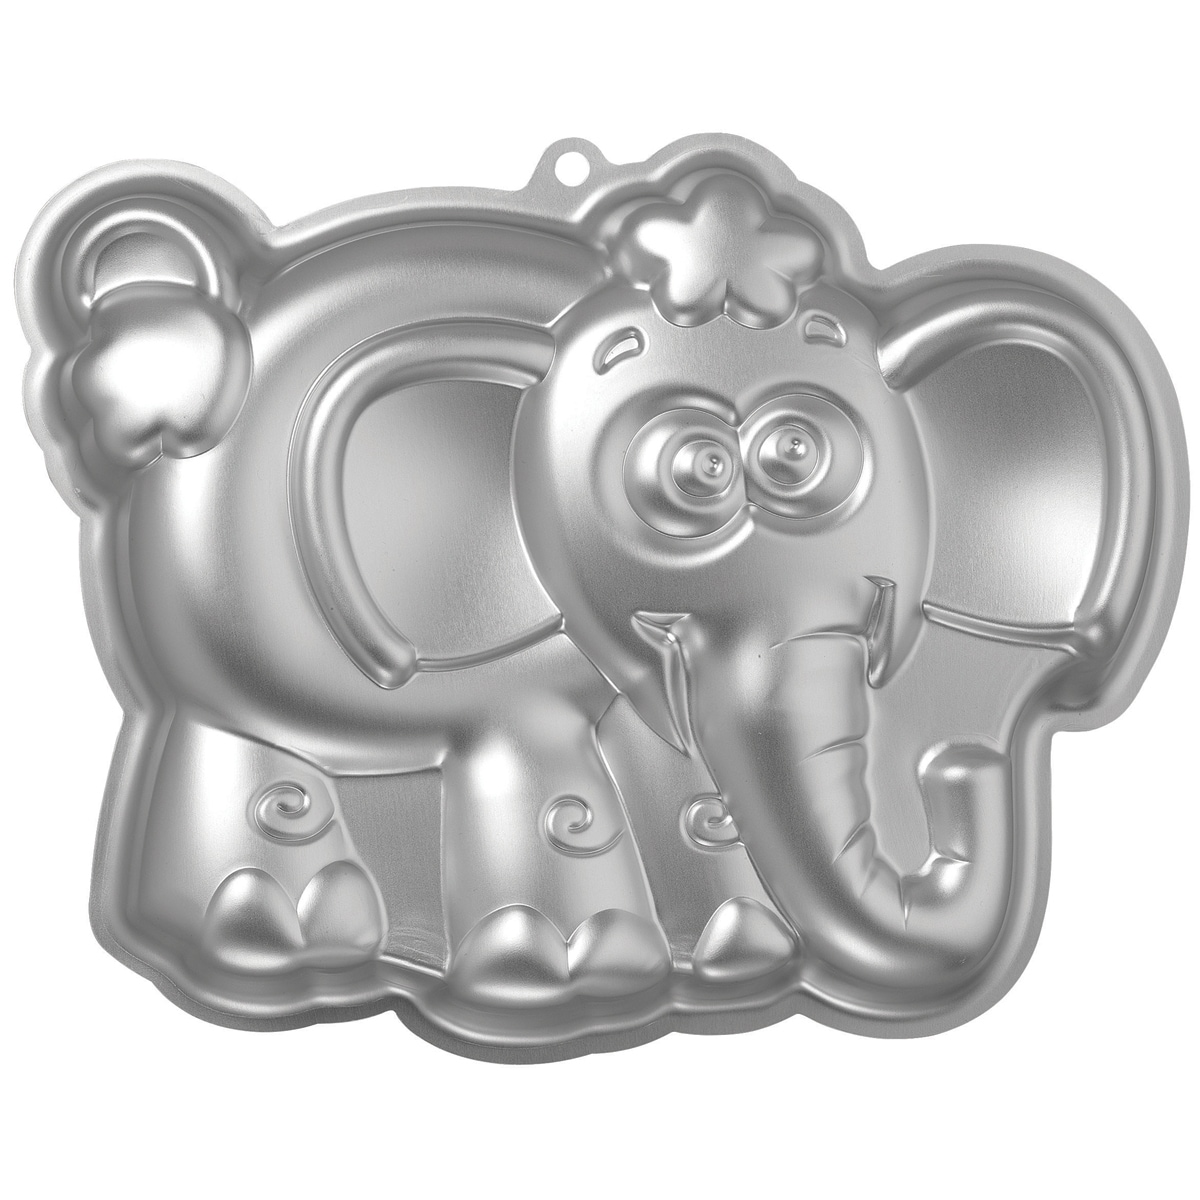 Wilton 'Elephant' Novelty Cake Pan at Sears.com